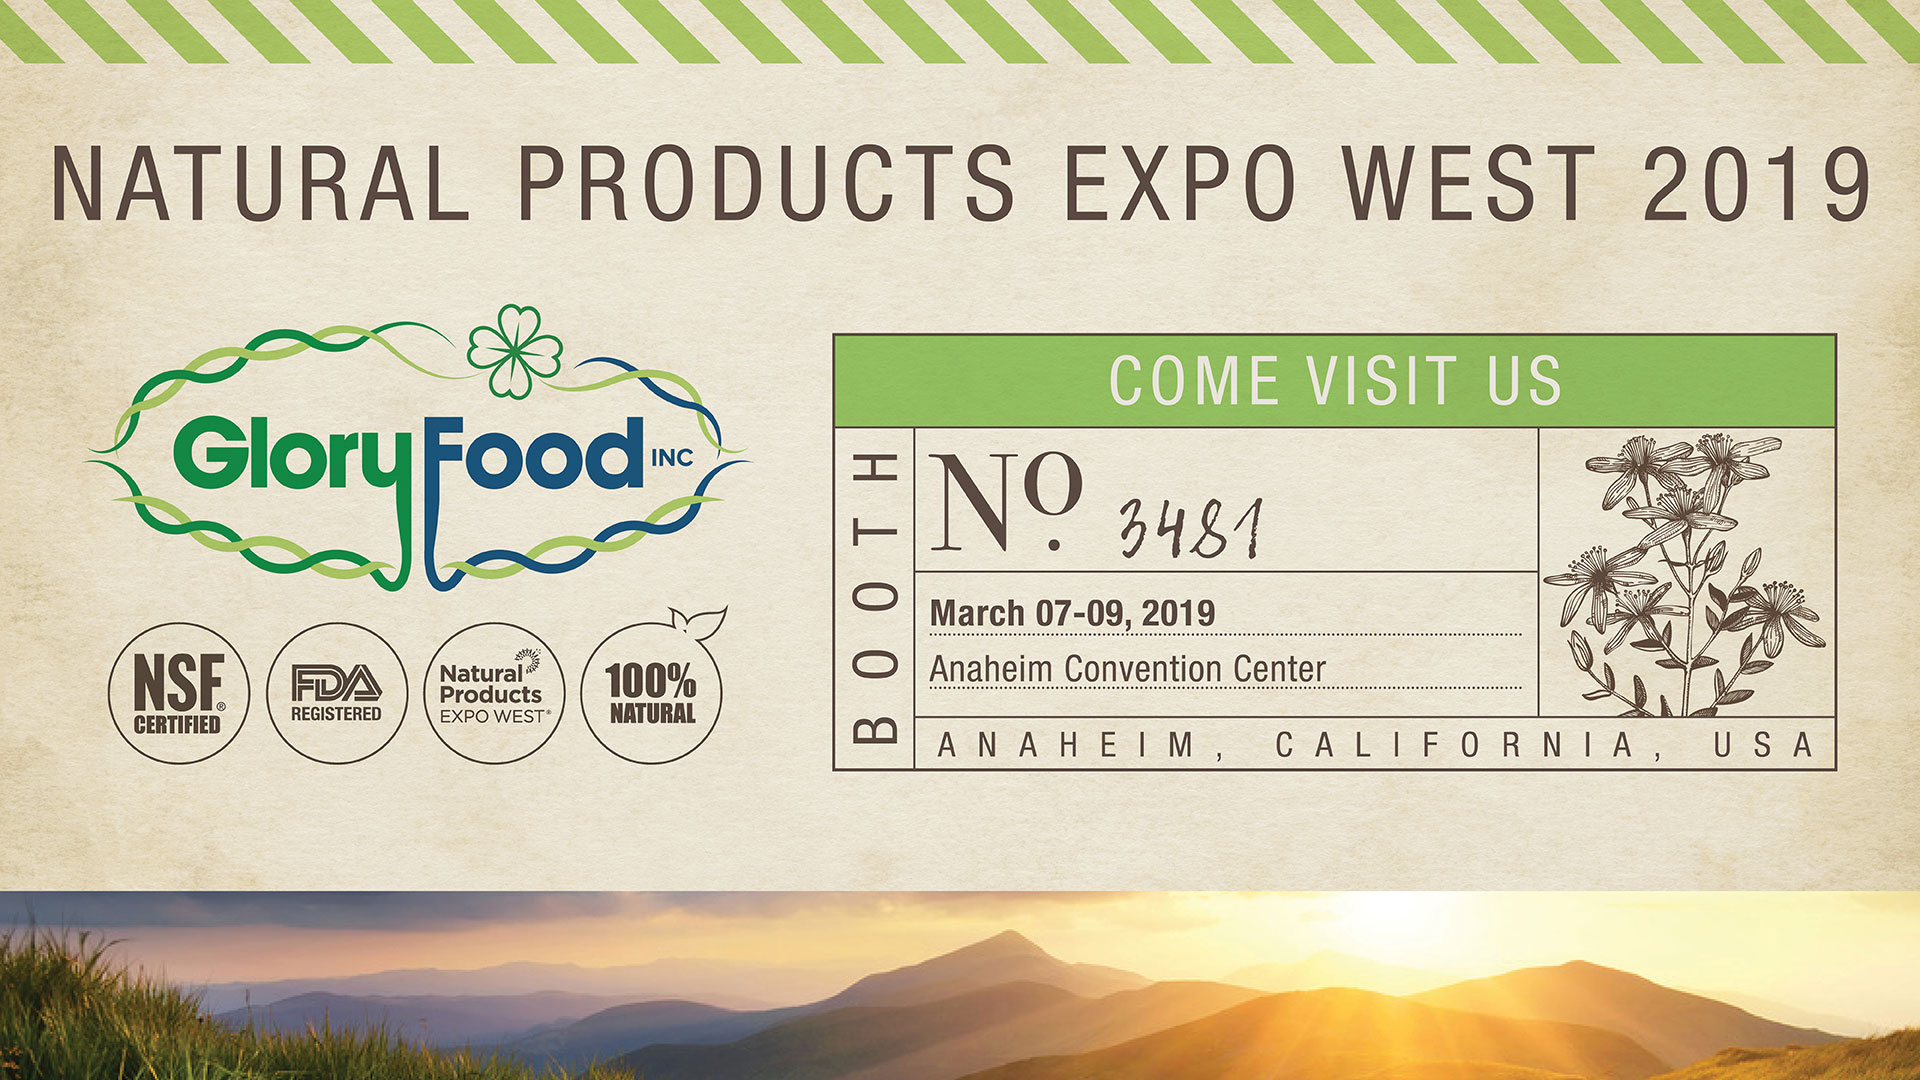 Natural Products Expo West 2019